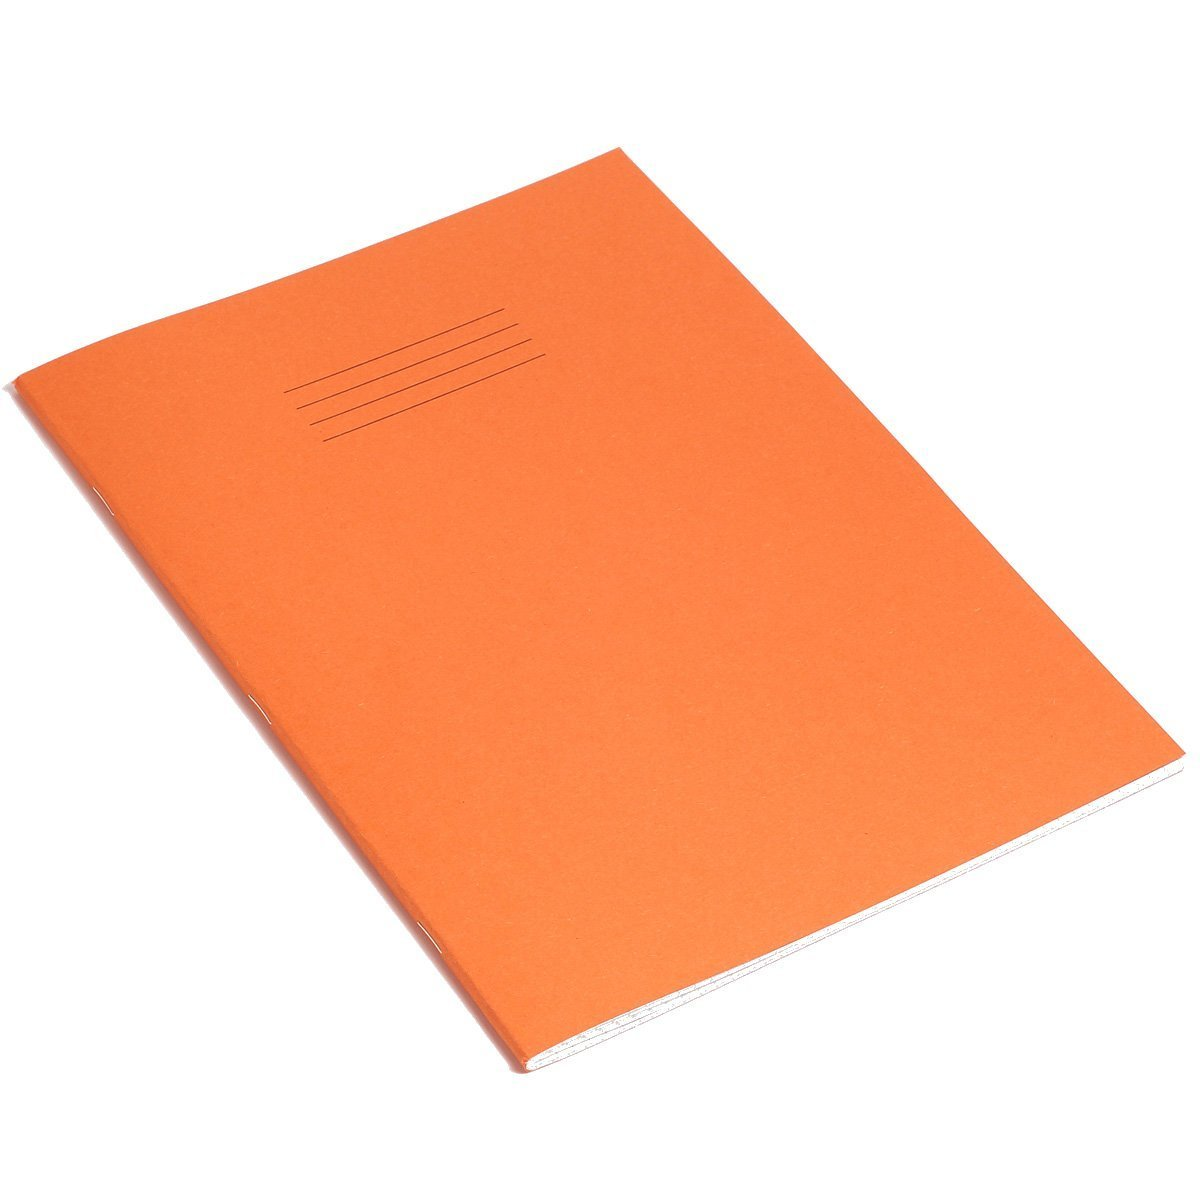 A4 Exercise Books 5mm Squared Orange Cover 80 Page (Single Book) Rhino